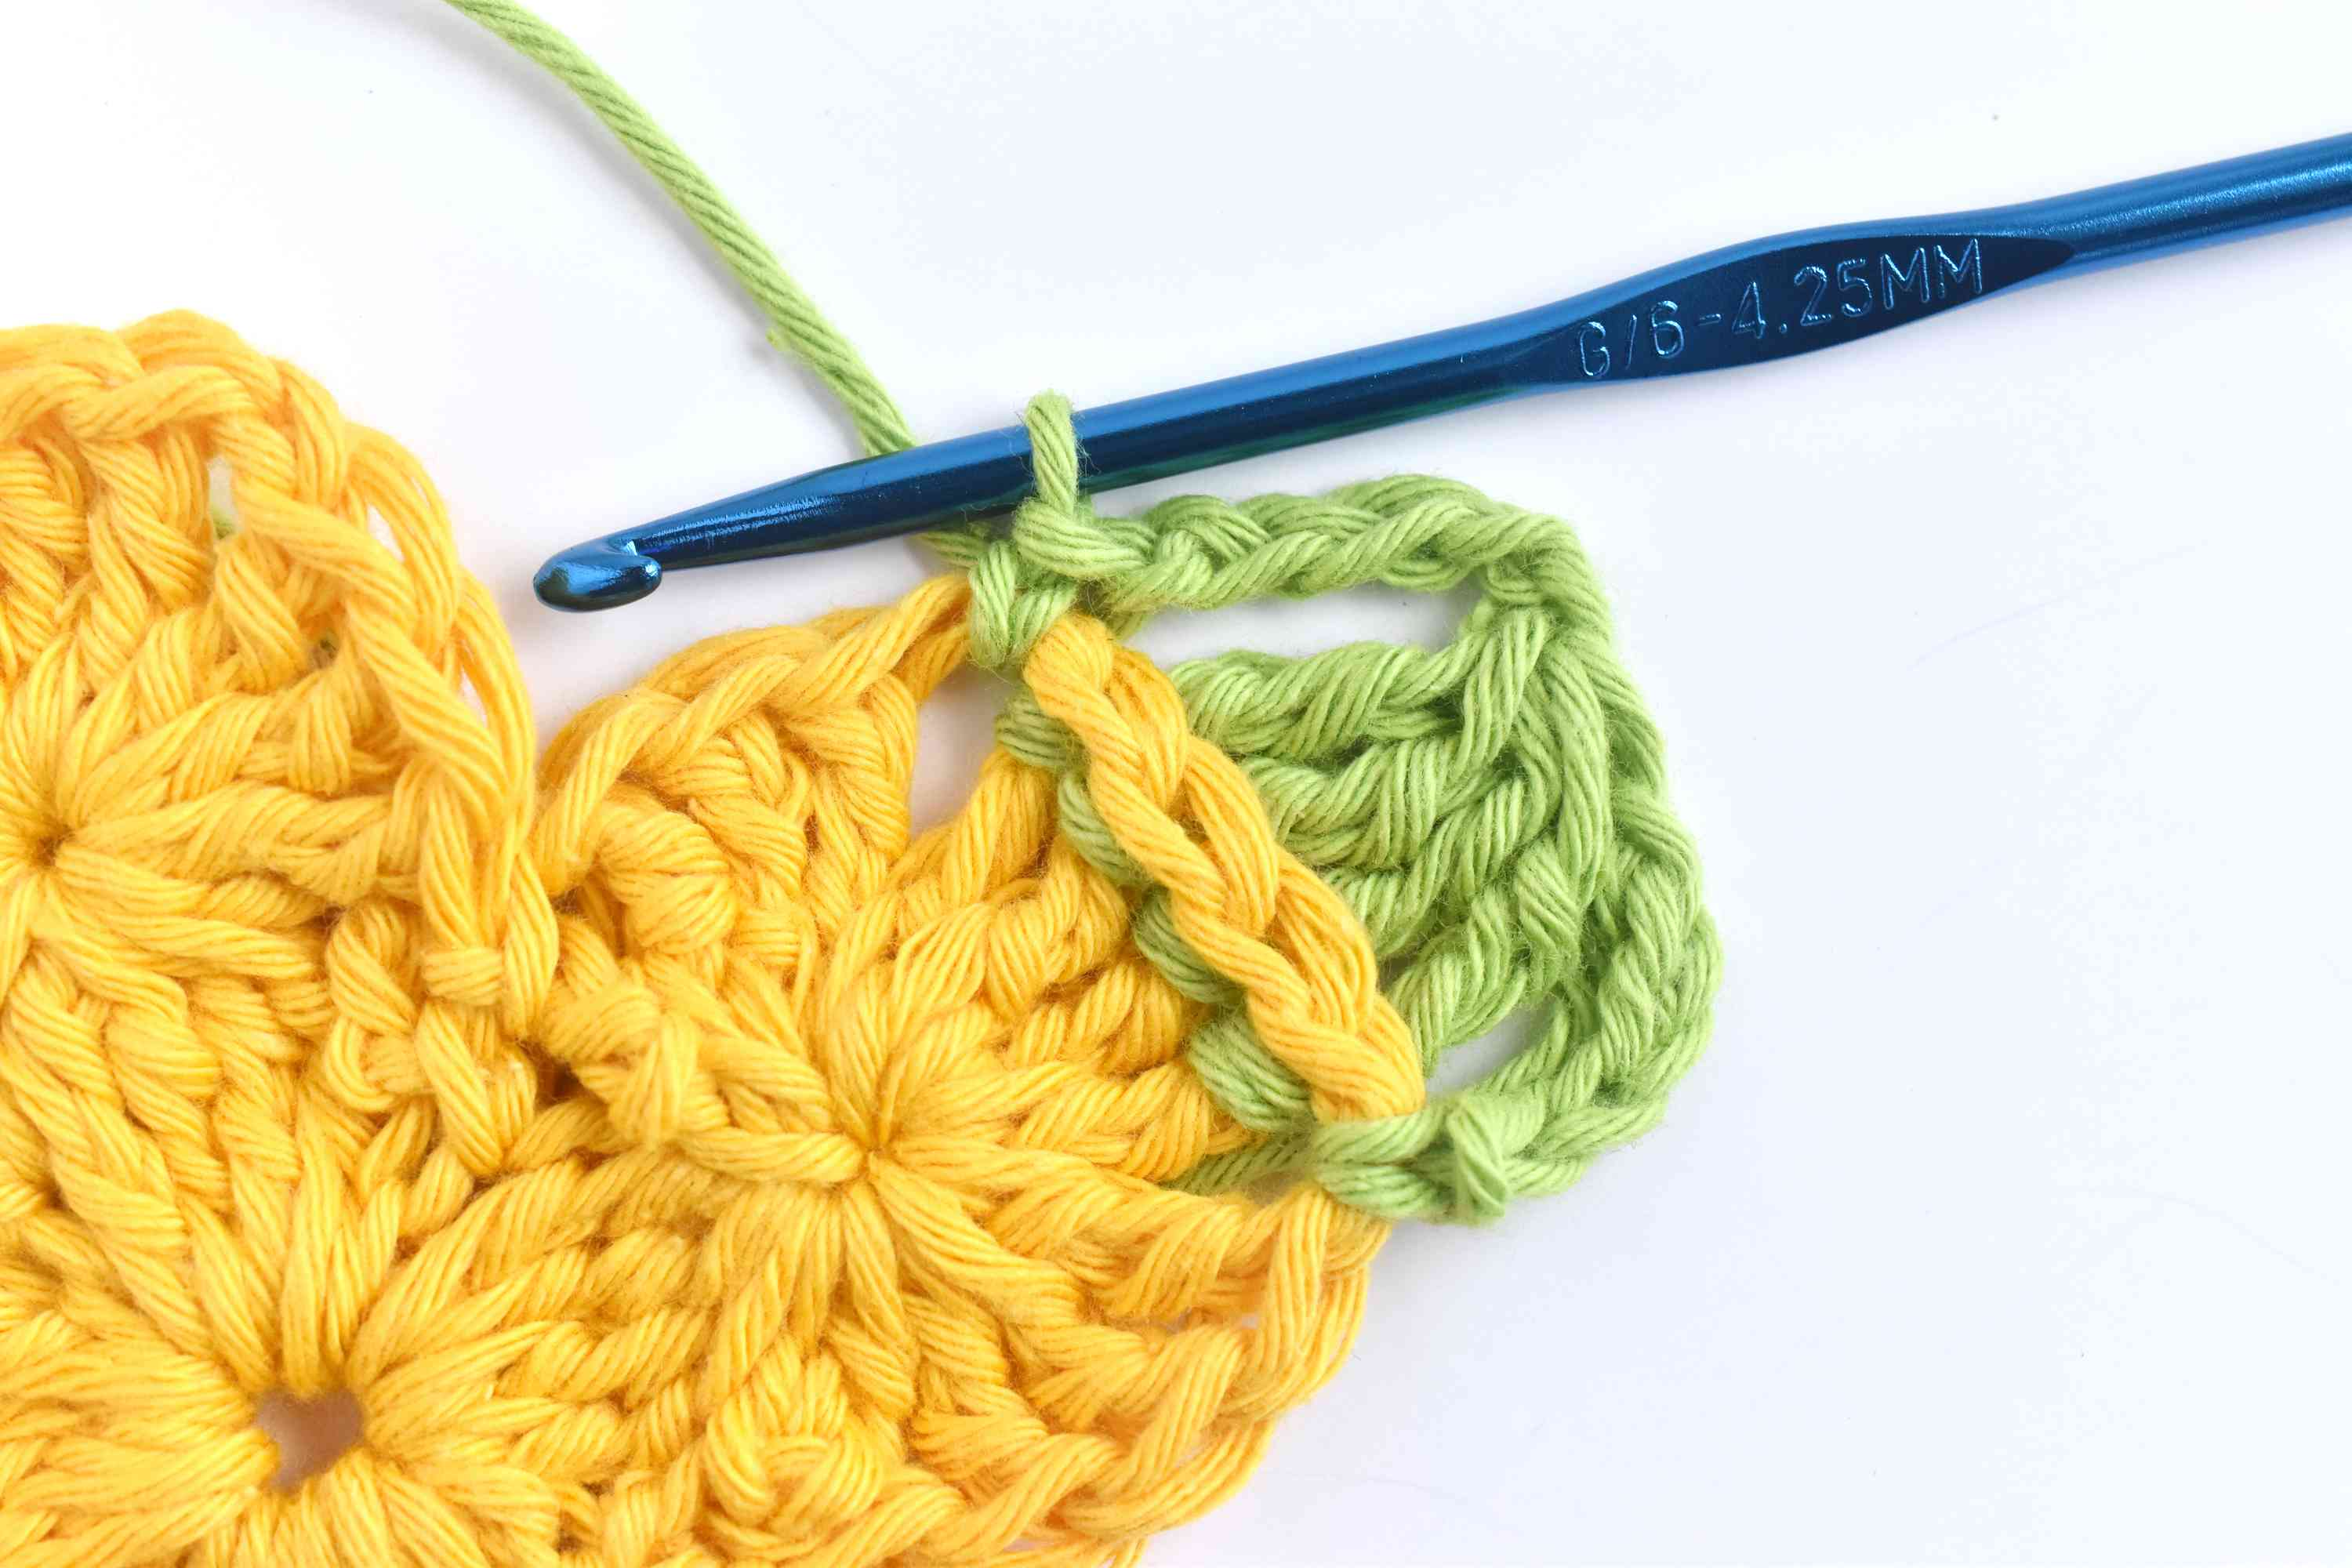 Chain 5 and Single Crochet in the Chain 1 Space